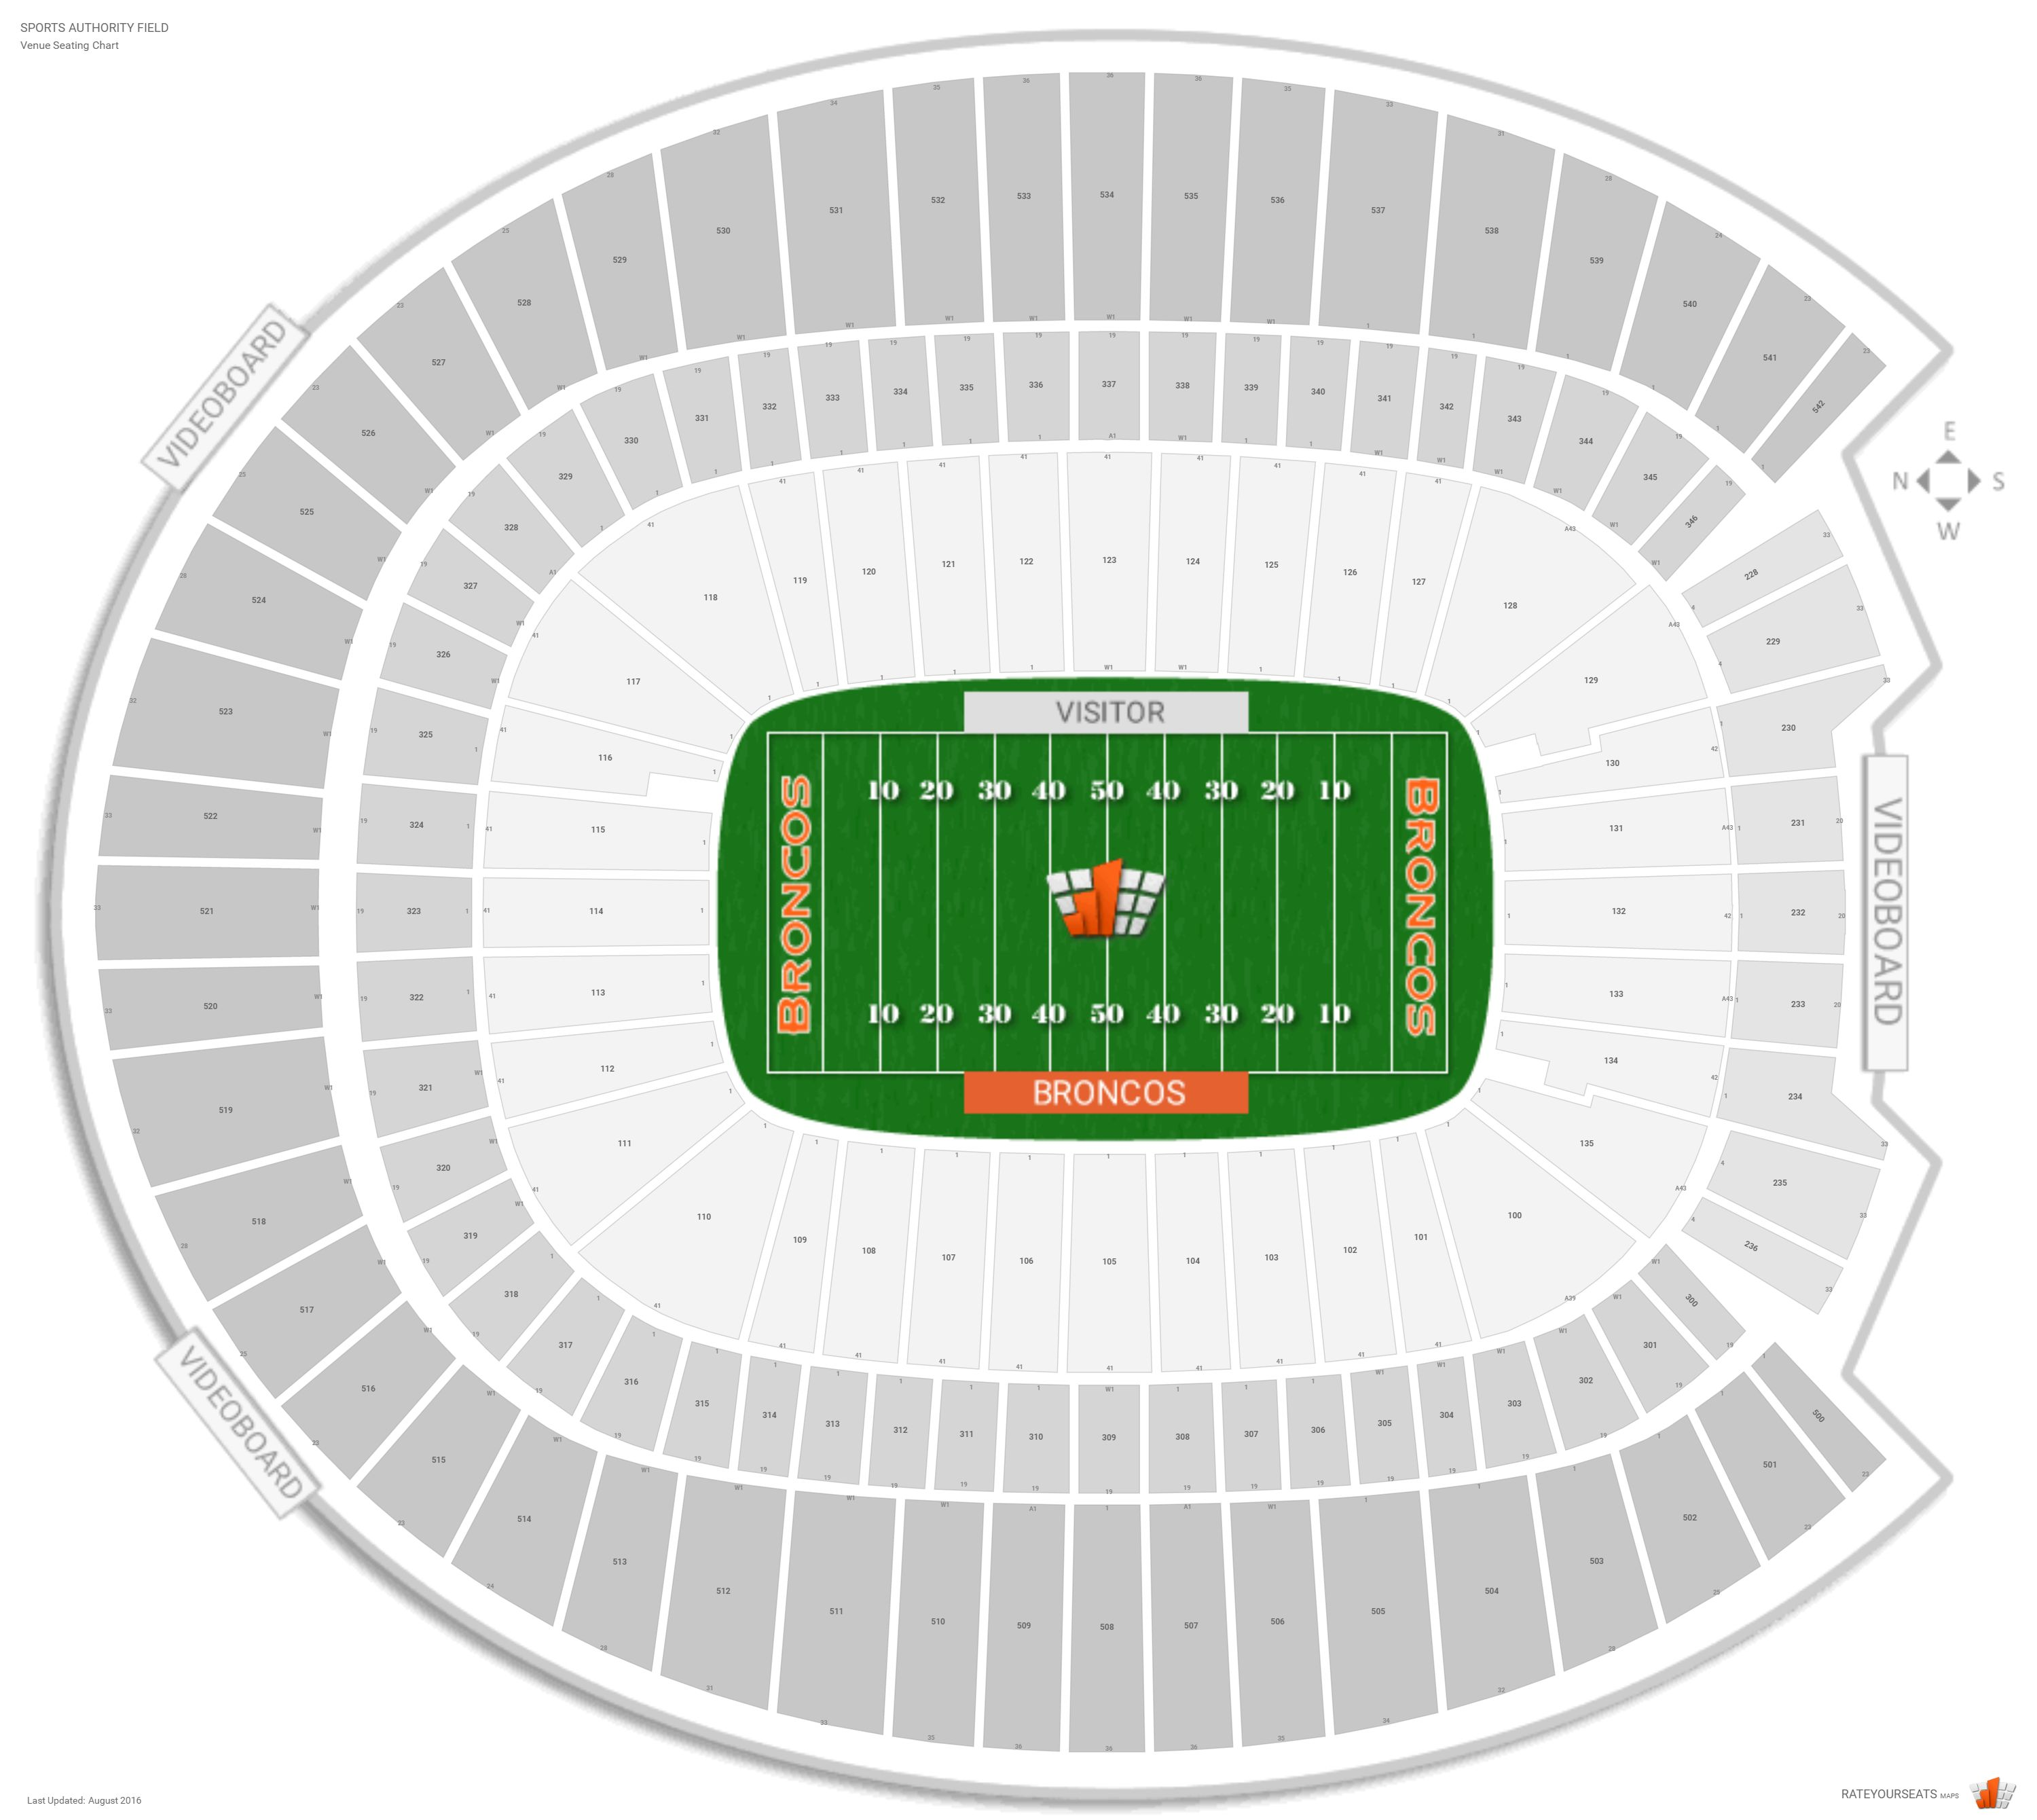 Sports Authority Mile High Stadium Seating Arenda Stroy